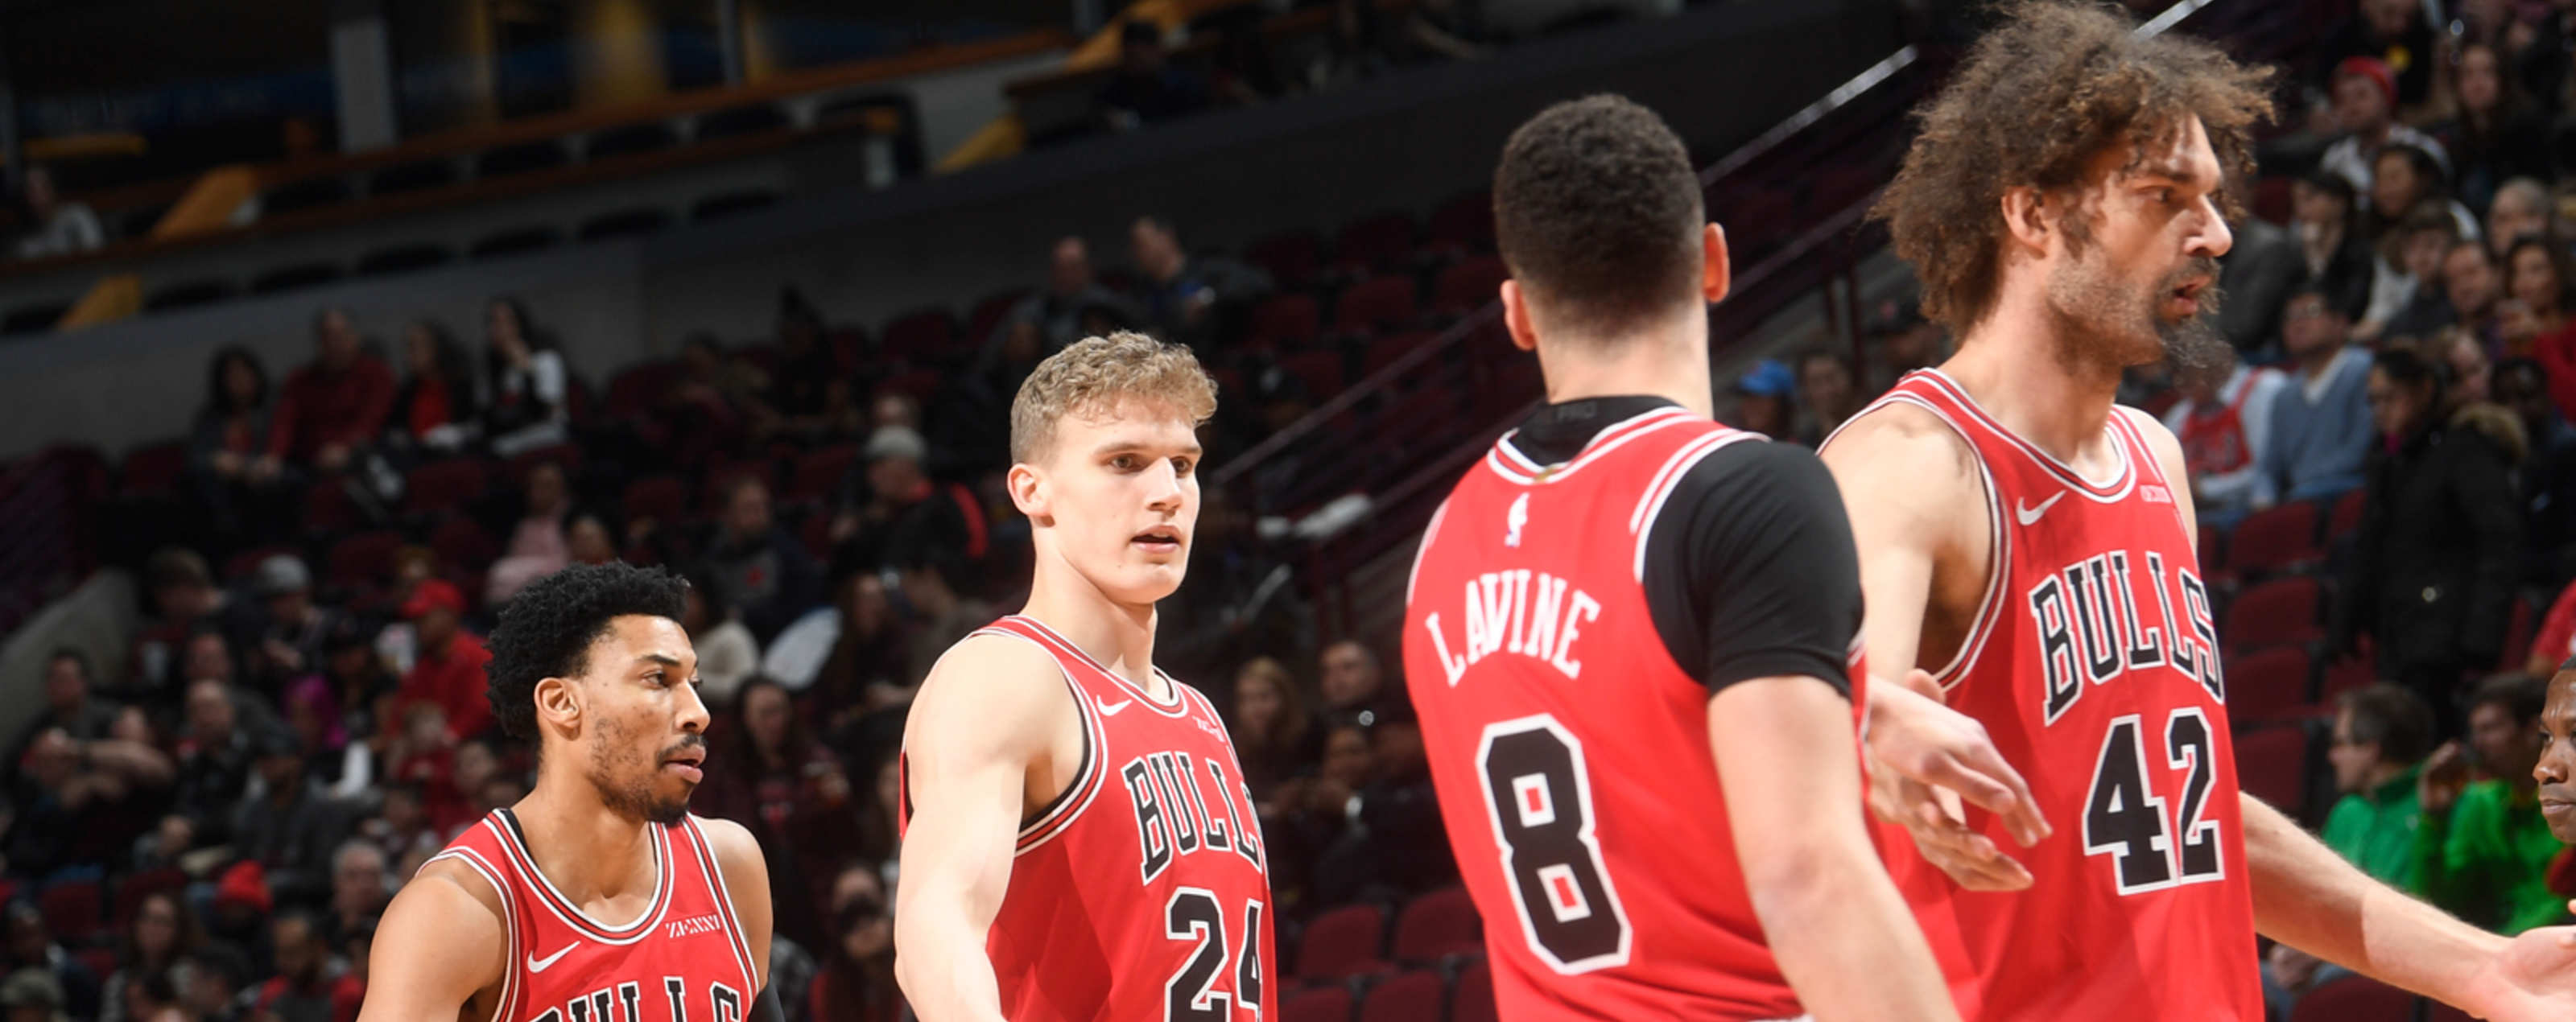 Chicago Bulls players walk to the bench during a timeout.